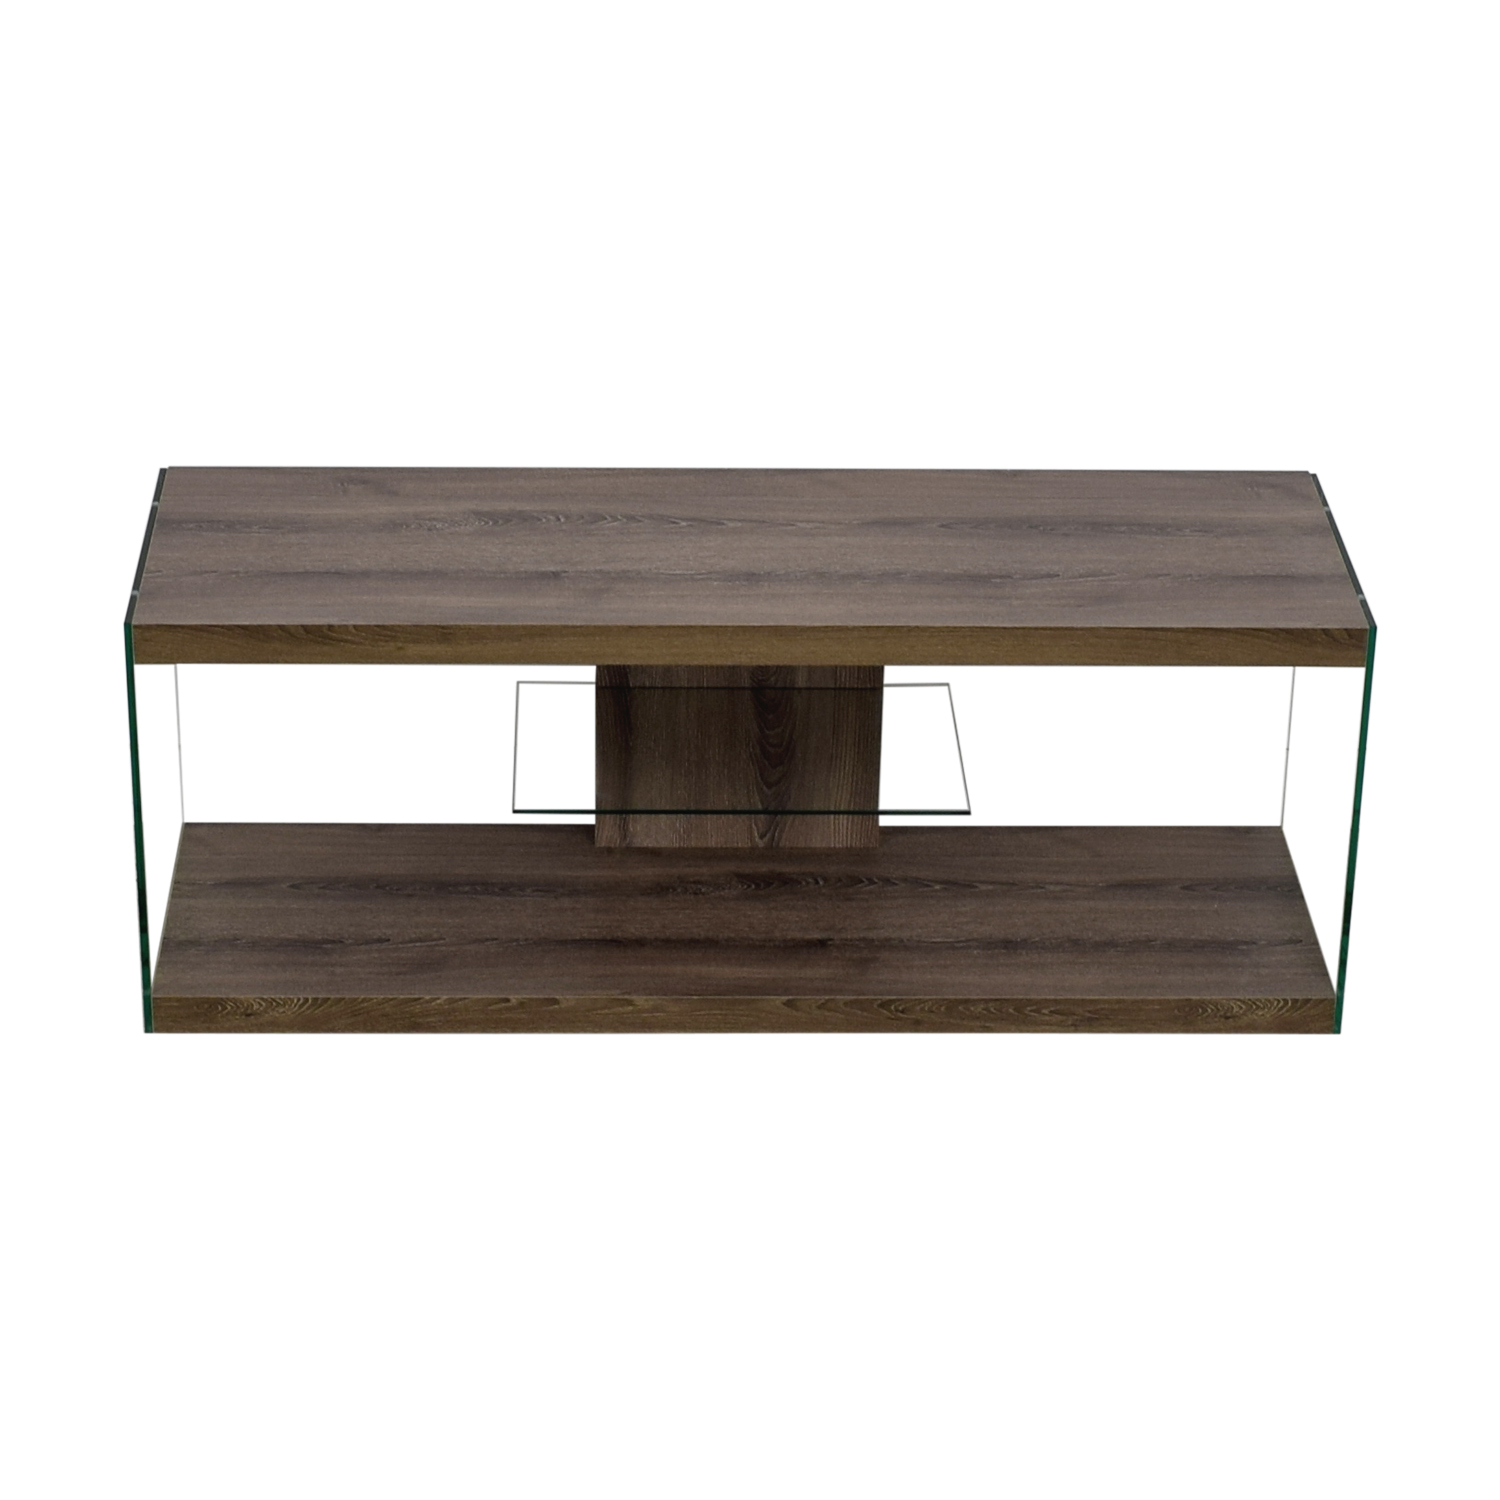 Monarch Specialties Monarch Specialties Wood and Metal TV Stand nyc